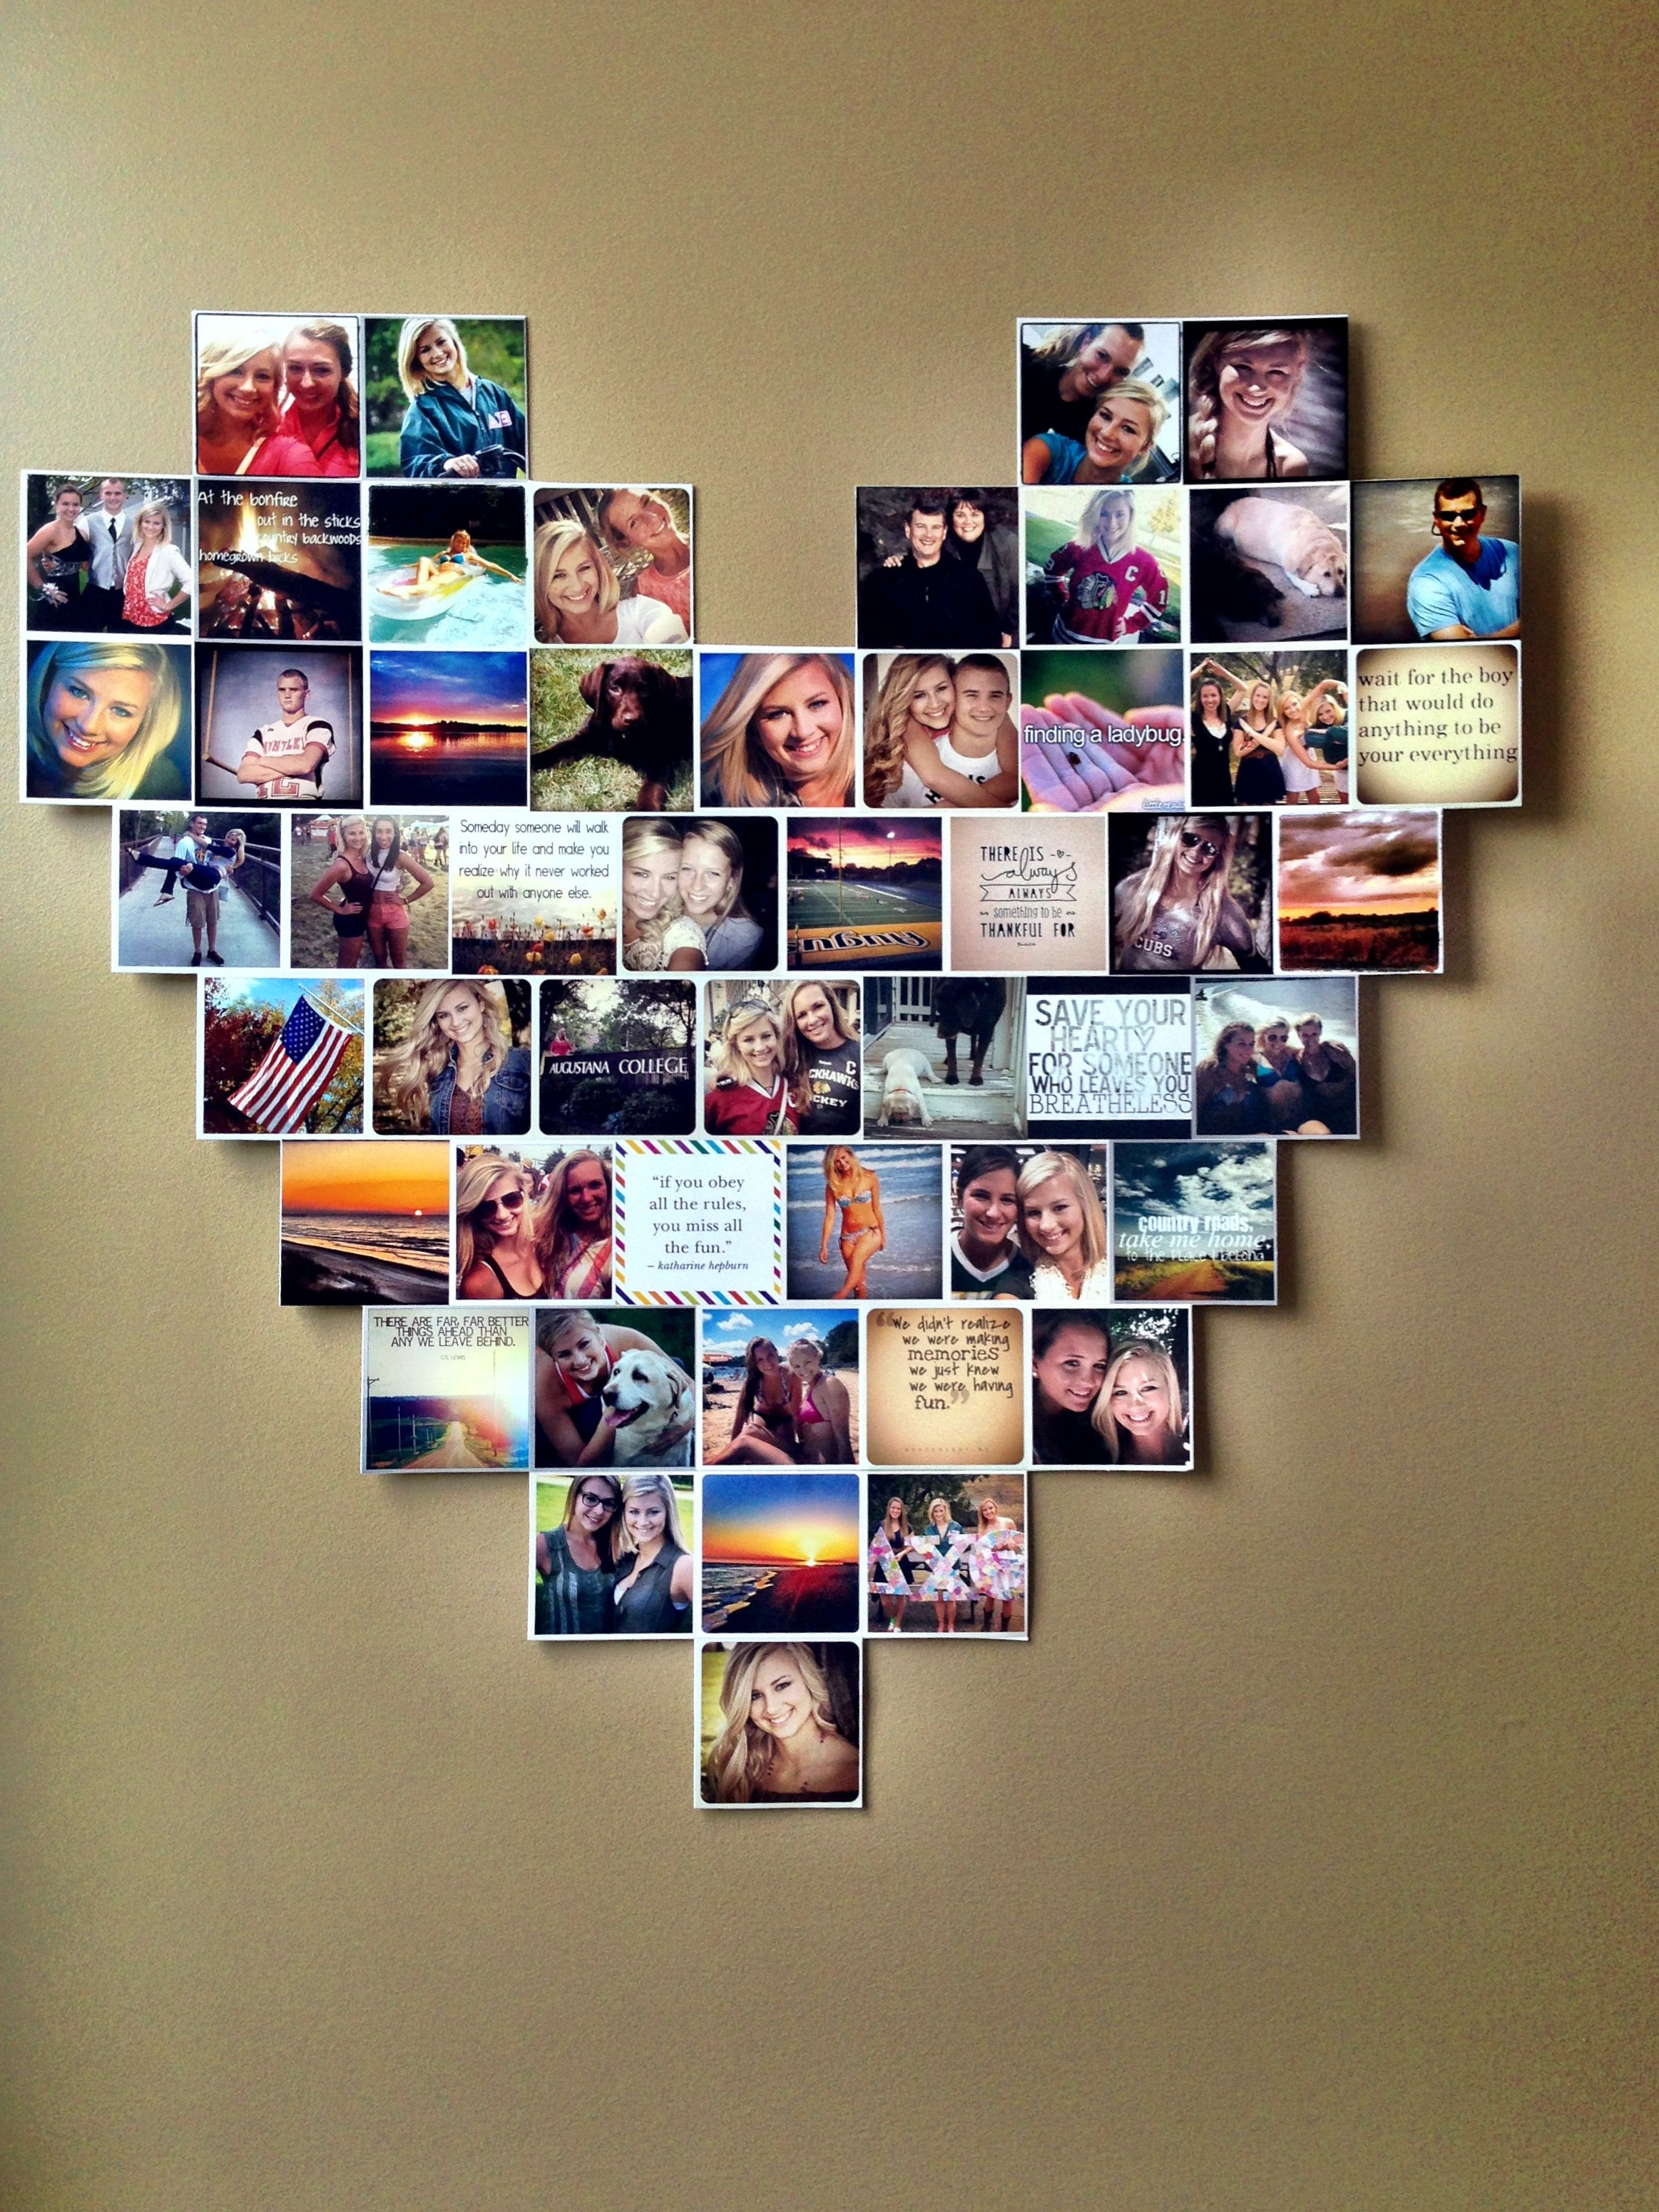 Wohnzimmer Deko Ideen Instagram Heart Photo Collage Dorm Room Ideas Instagram Pictures